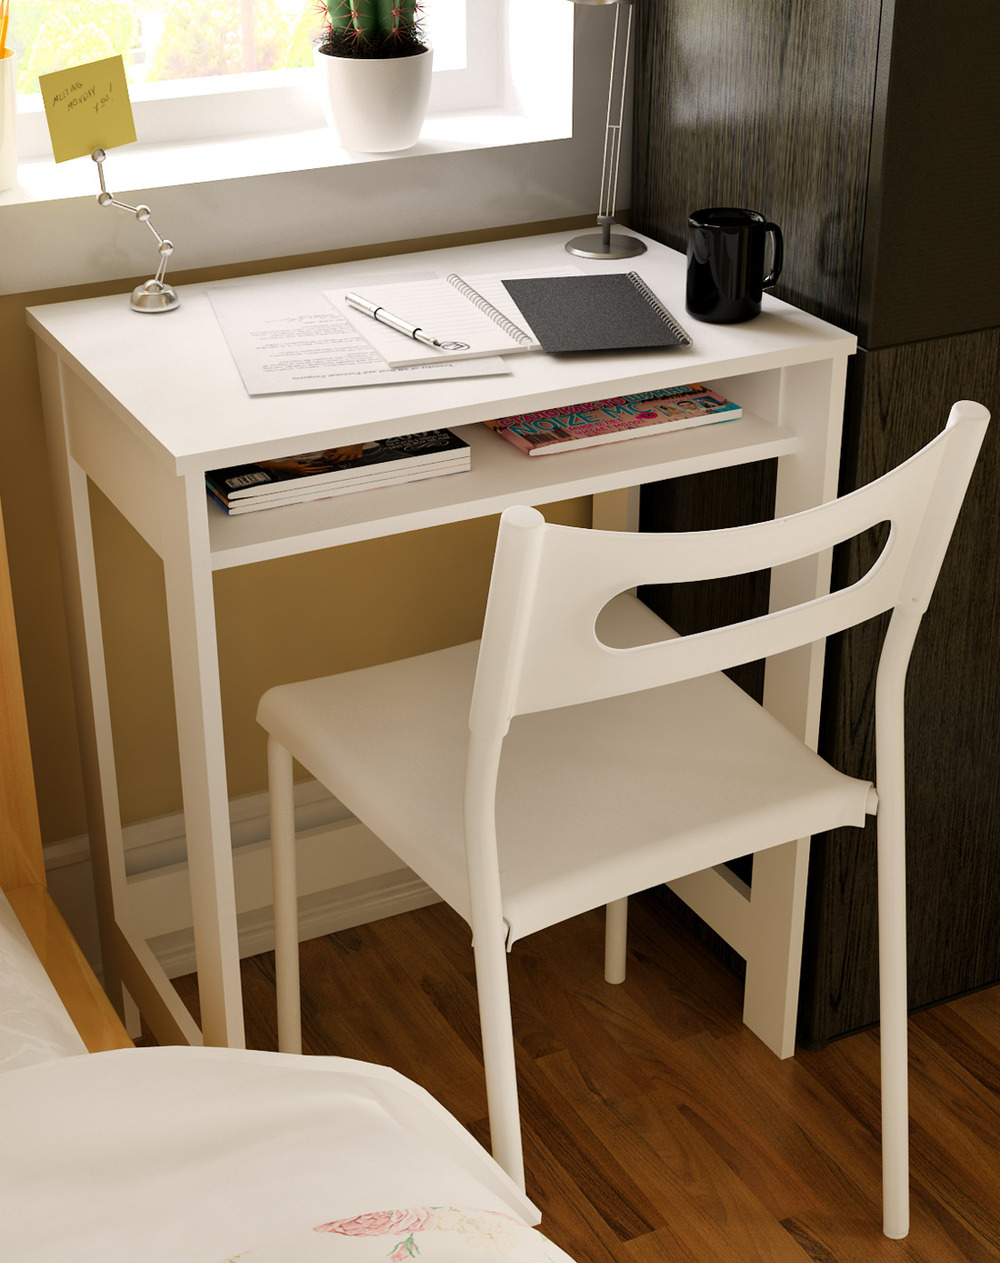 ikea children 39 s creative minimalist desk computer desk simple desk study table a small desk. Black Bedroom Furniture Sets. Home Design Ideas